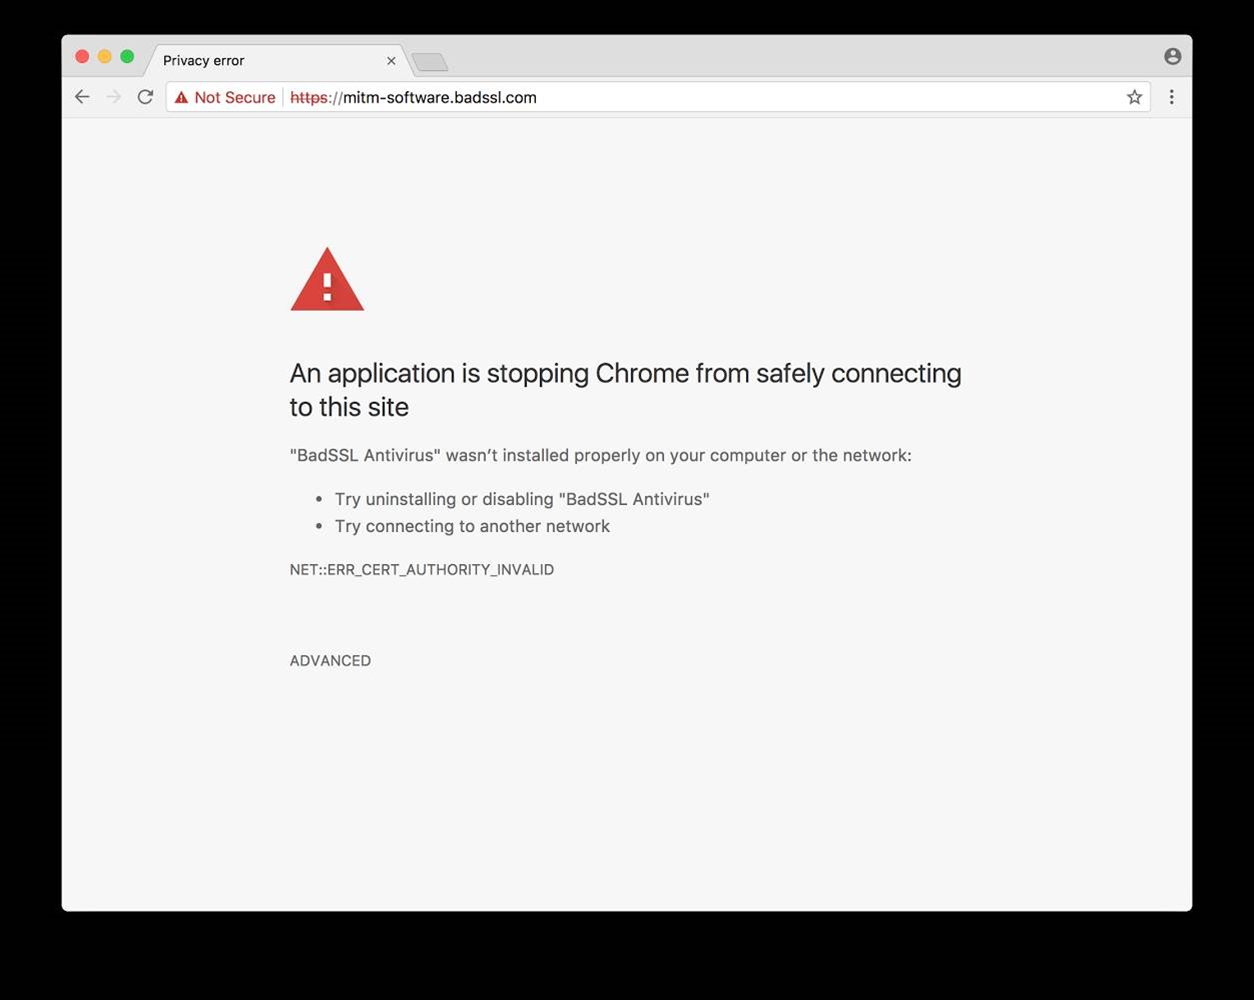 Chrome to provide TLS interception warnings